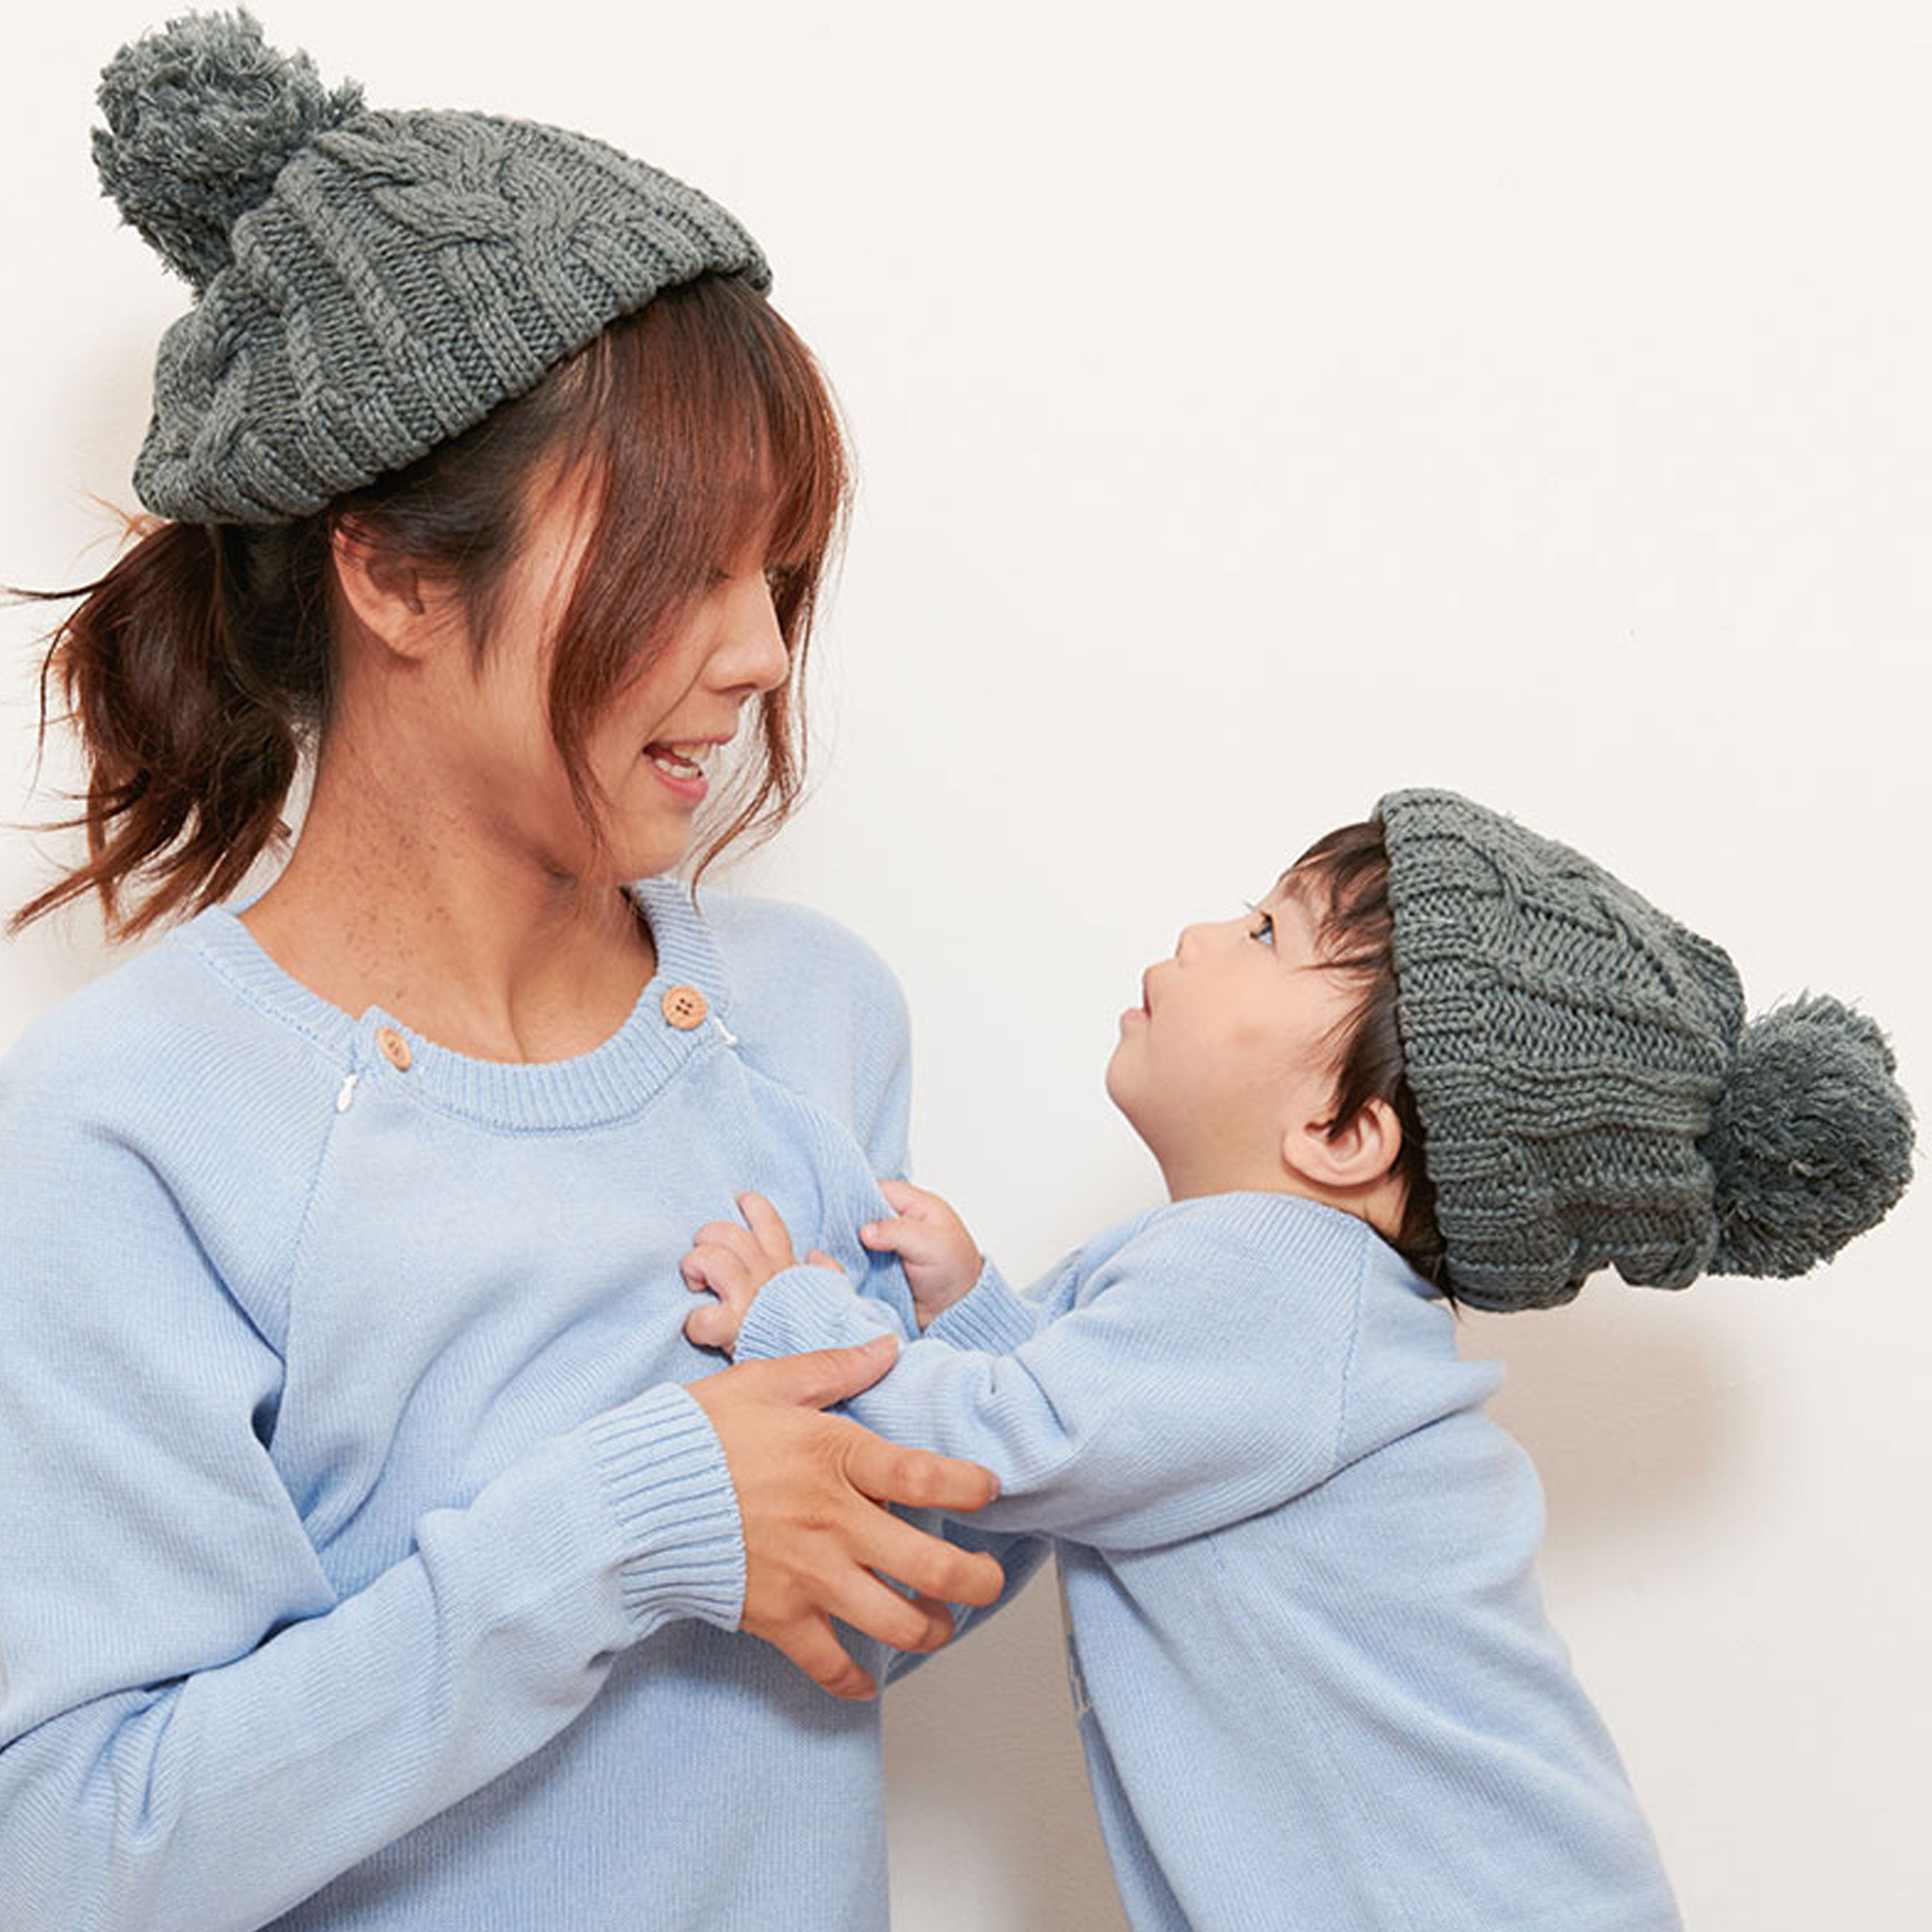 Mom and Baby Matching 100% Cotton Knit Hat with Pom Pom (for babies)